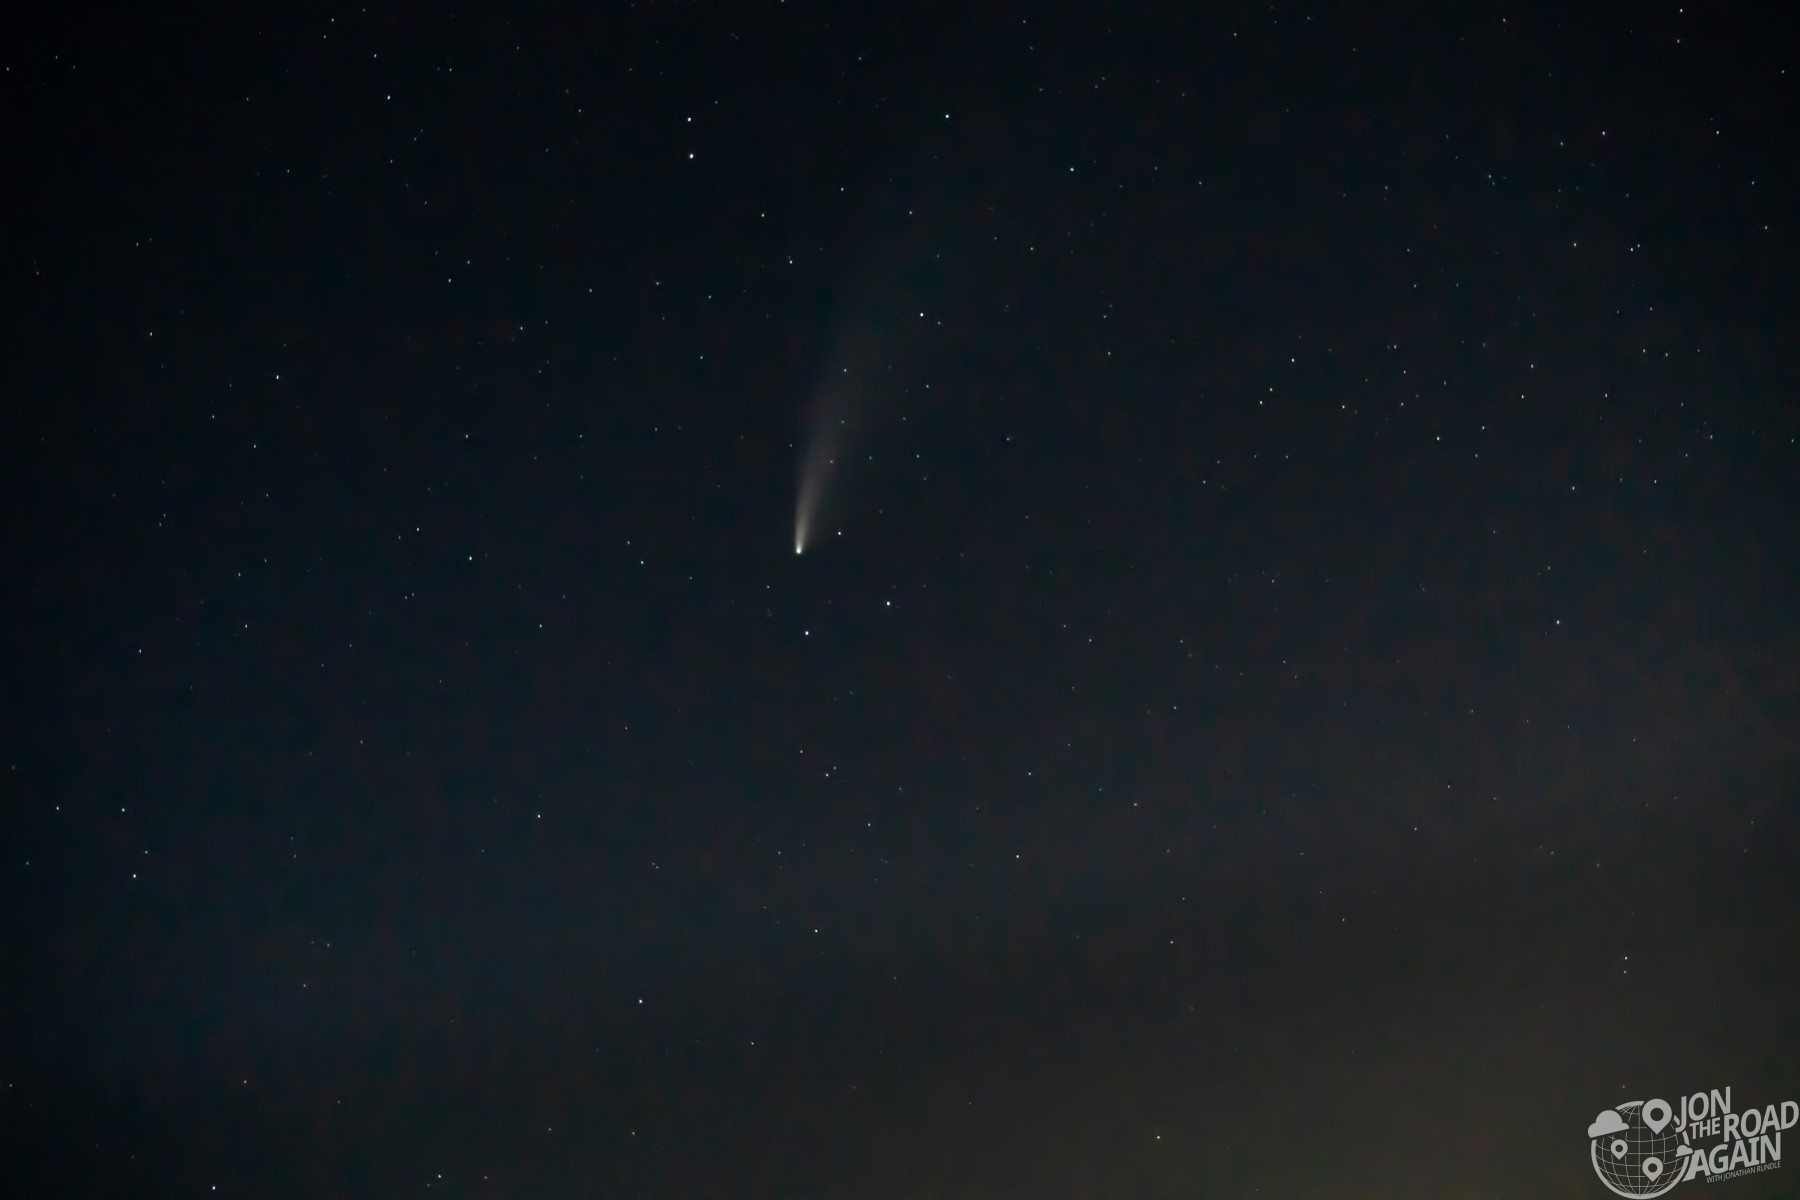 Neowise from Western Washington